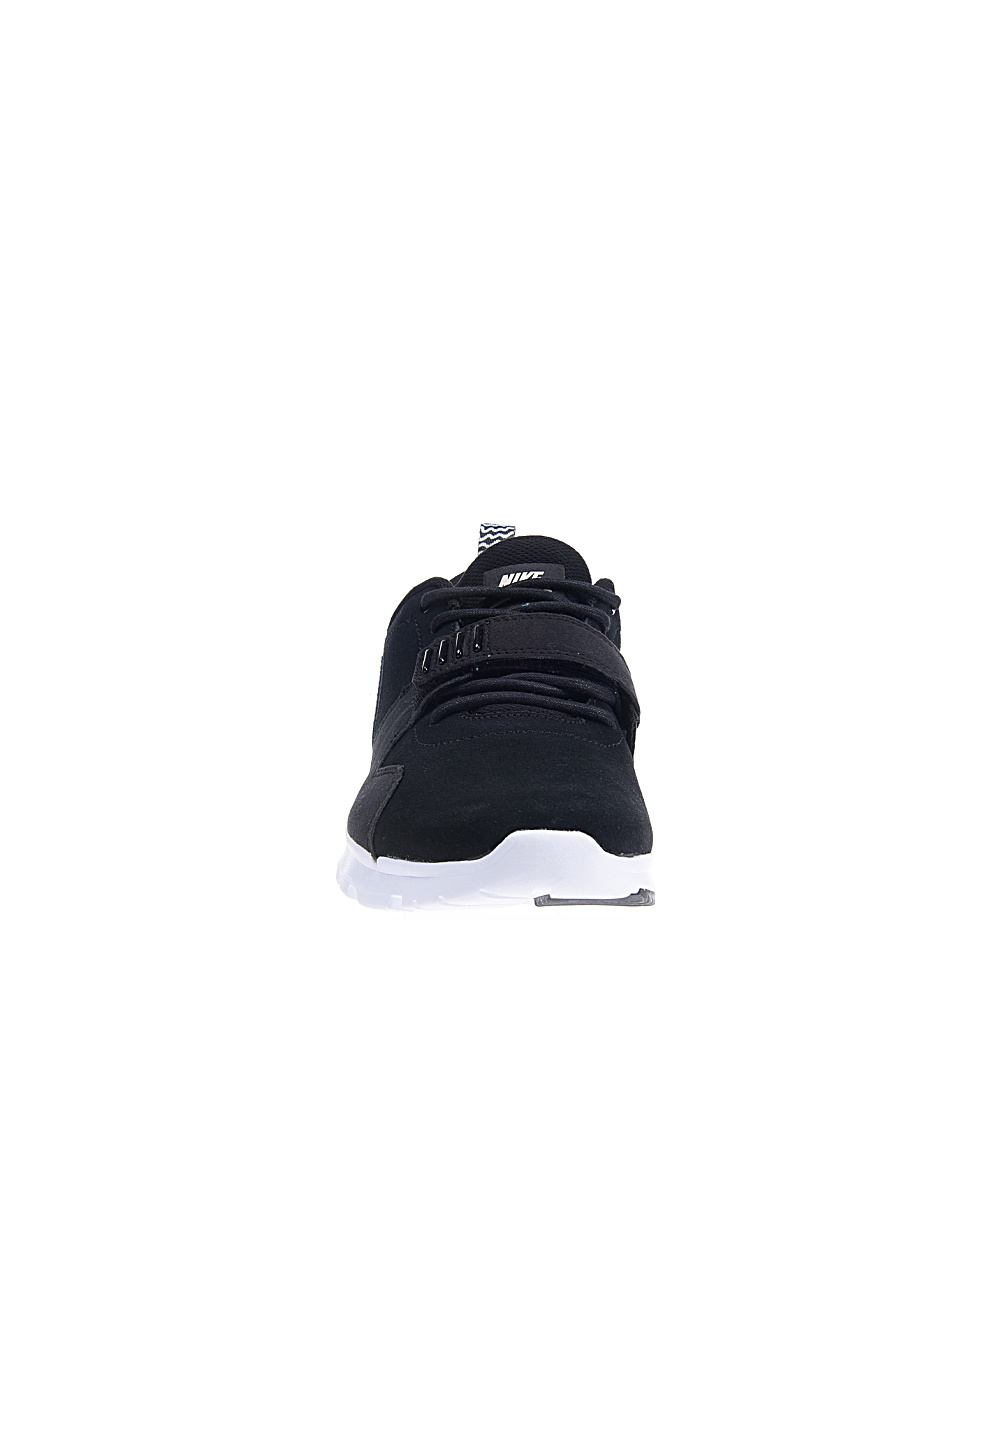 Nike Pour Baskets Sports Sb Trainerendor L Noir Planet Homme 1xR1qrH 2ec9ed746af